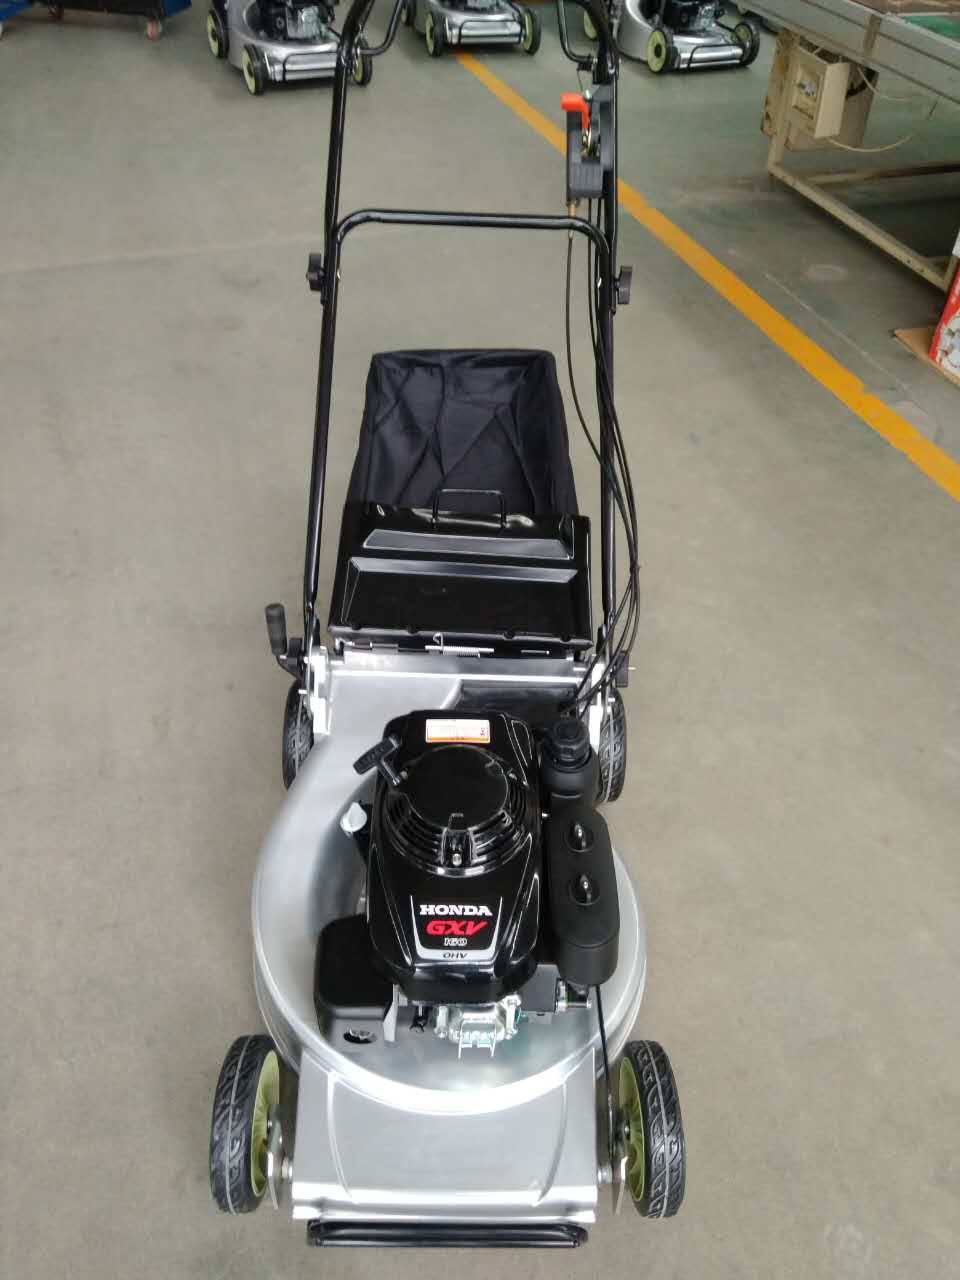 Honda powered 480mm lawn mower